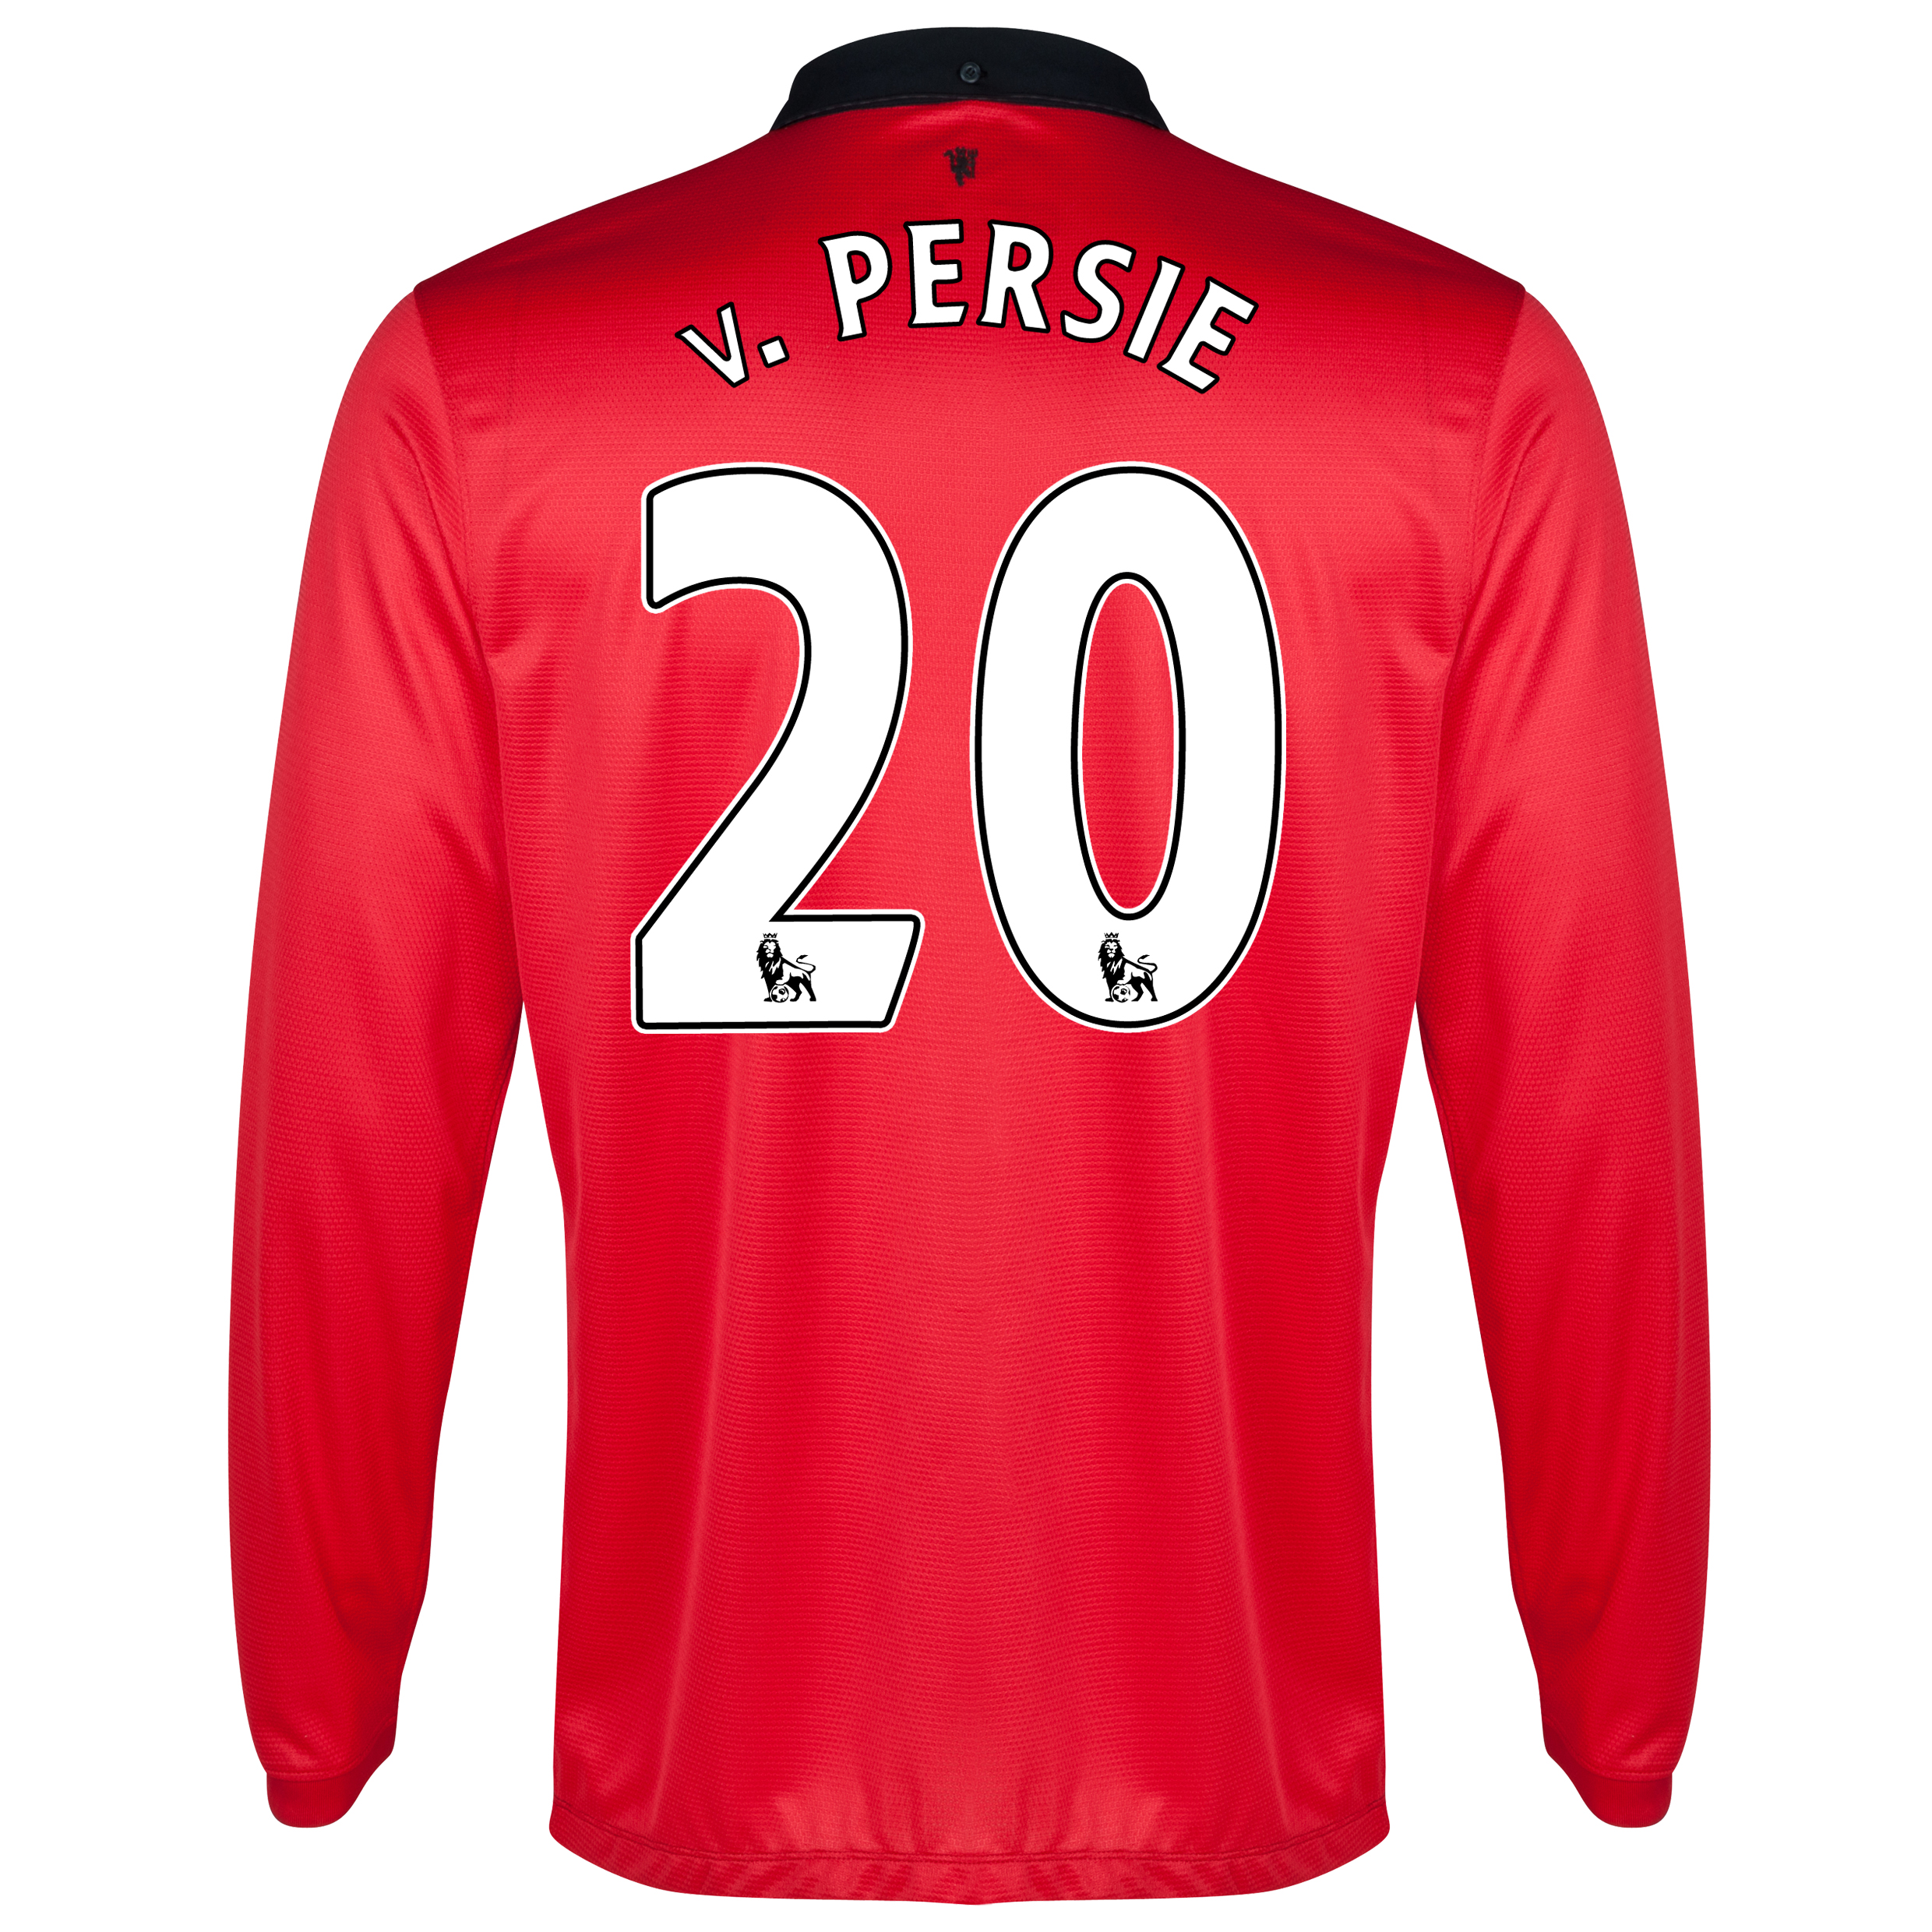 Manchester United Home Shirt 2013/14 - Long Sleeved with v.Persie 20 printing